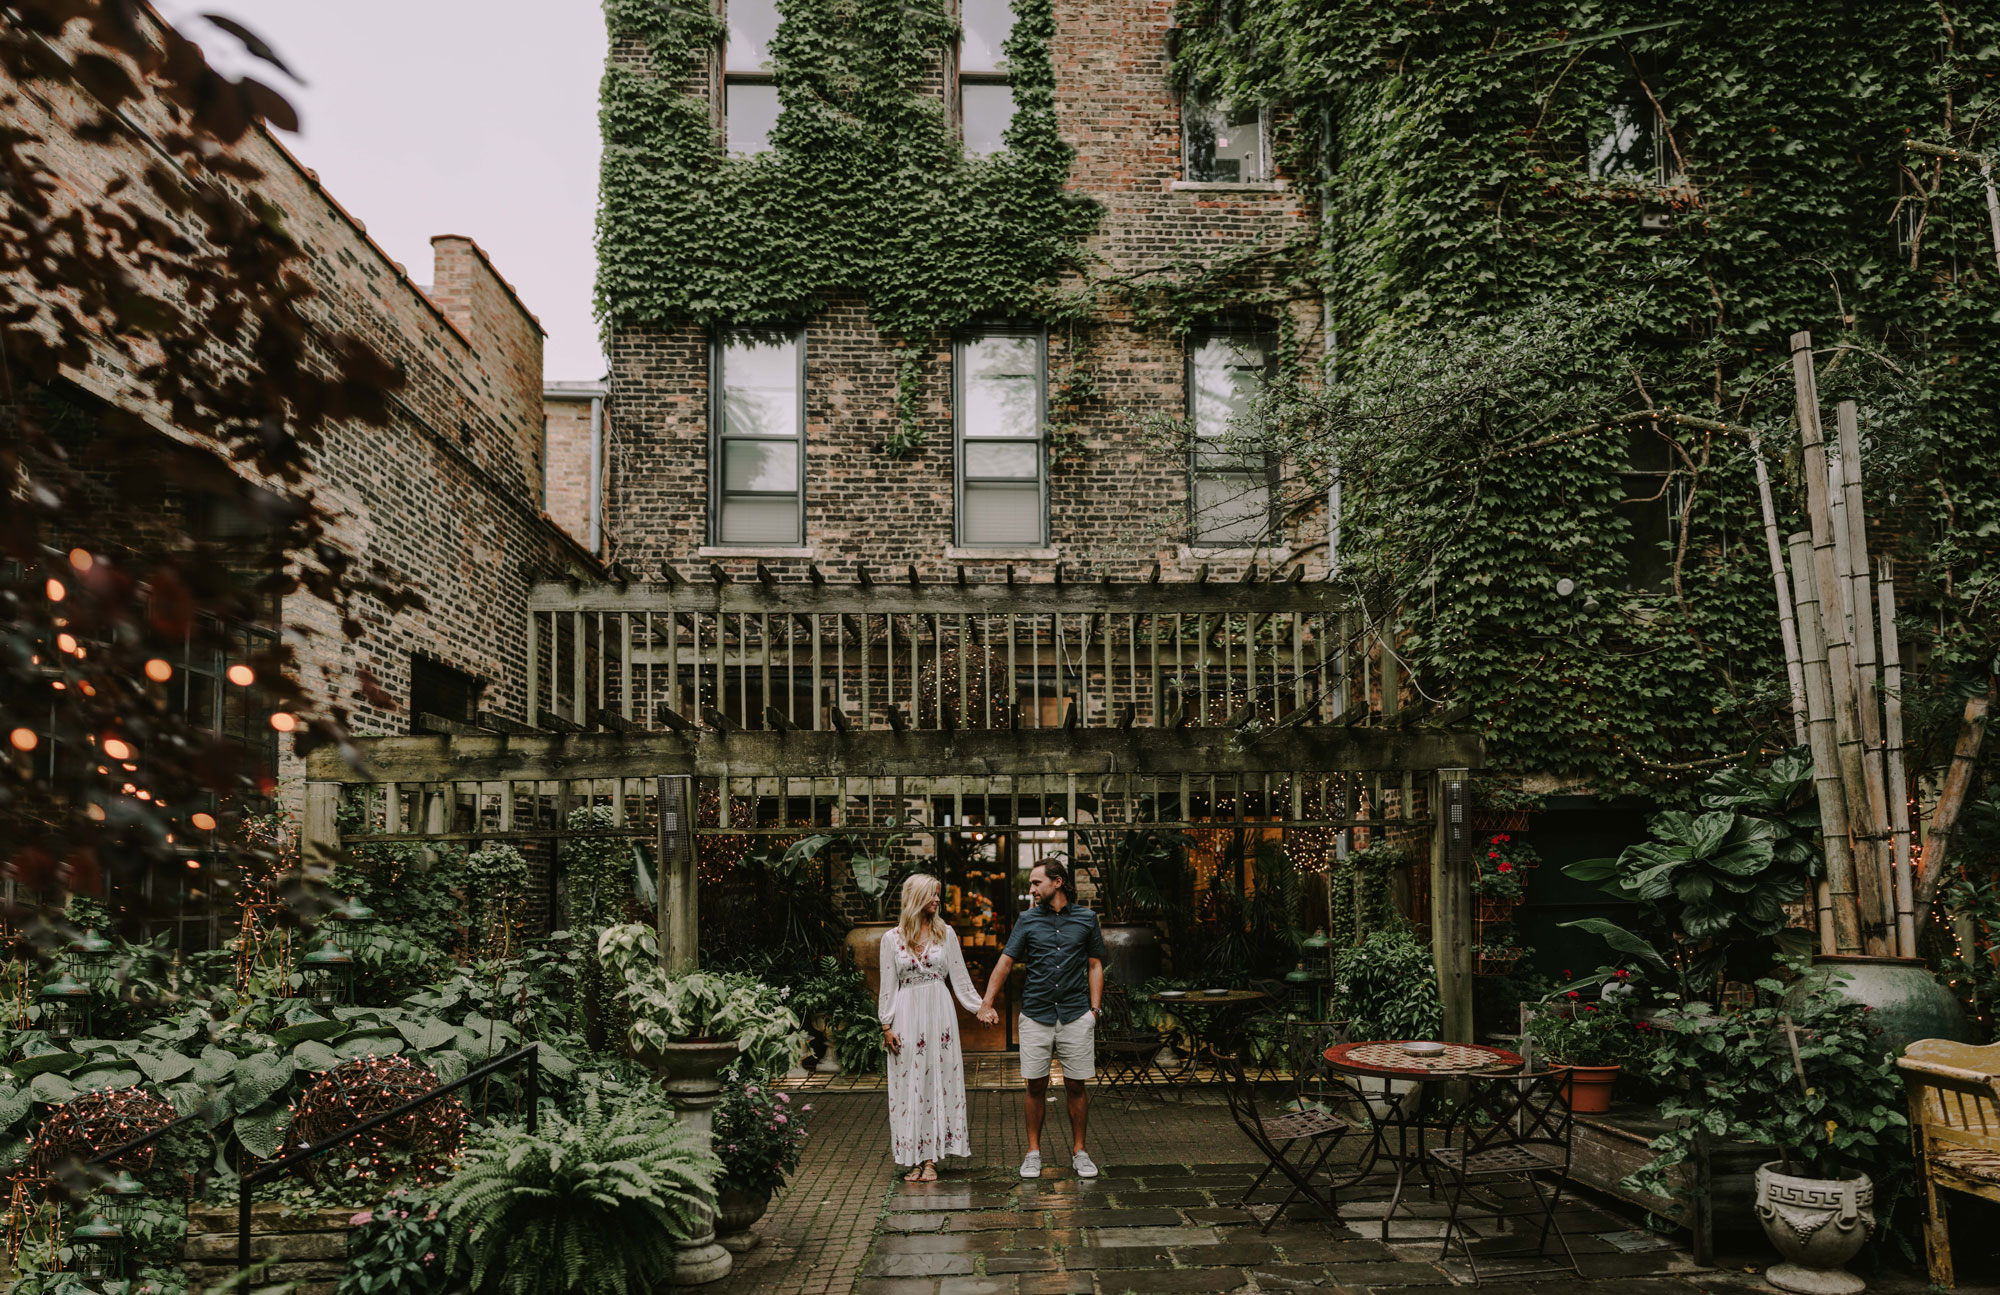 Marry & Matt McCoy taking their one year anniversary portraits in A New Leaf in downtown Chicago. This photograph is here because under all the wild that is the city this brought me so much peace! It's a must visit!